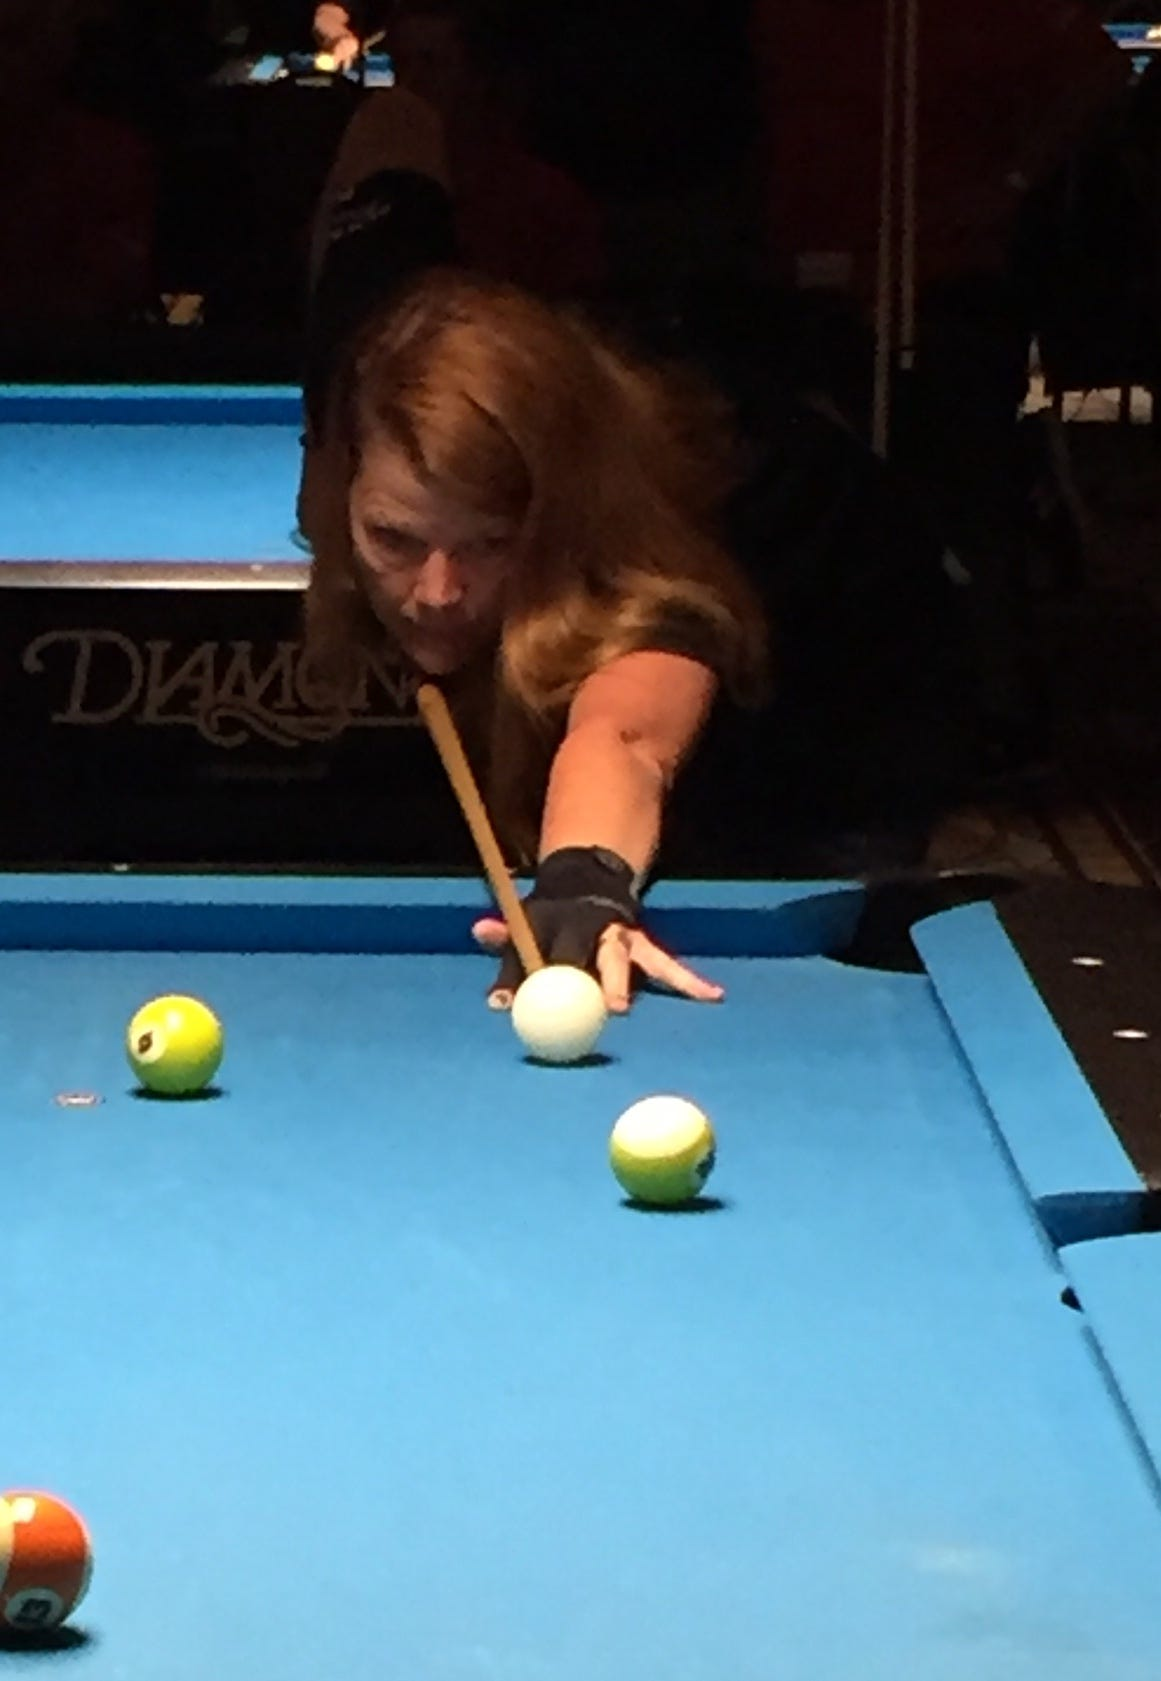 18 Las Cruces residents compete in BCA World Championships of billiards in Las Vegas | Las Cruces Sun